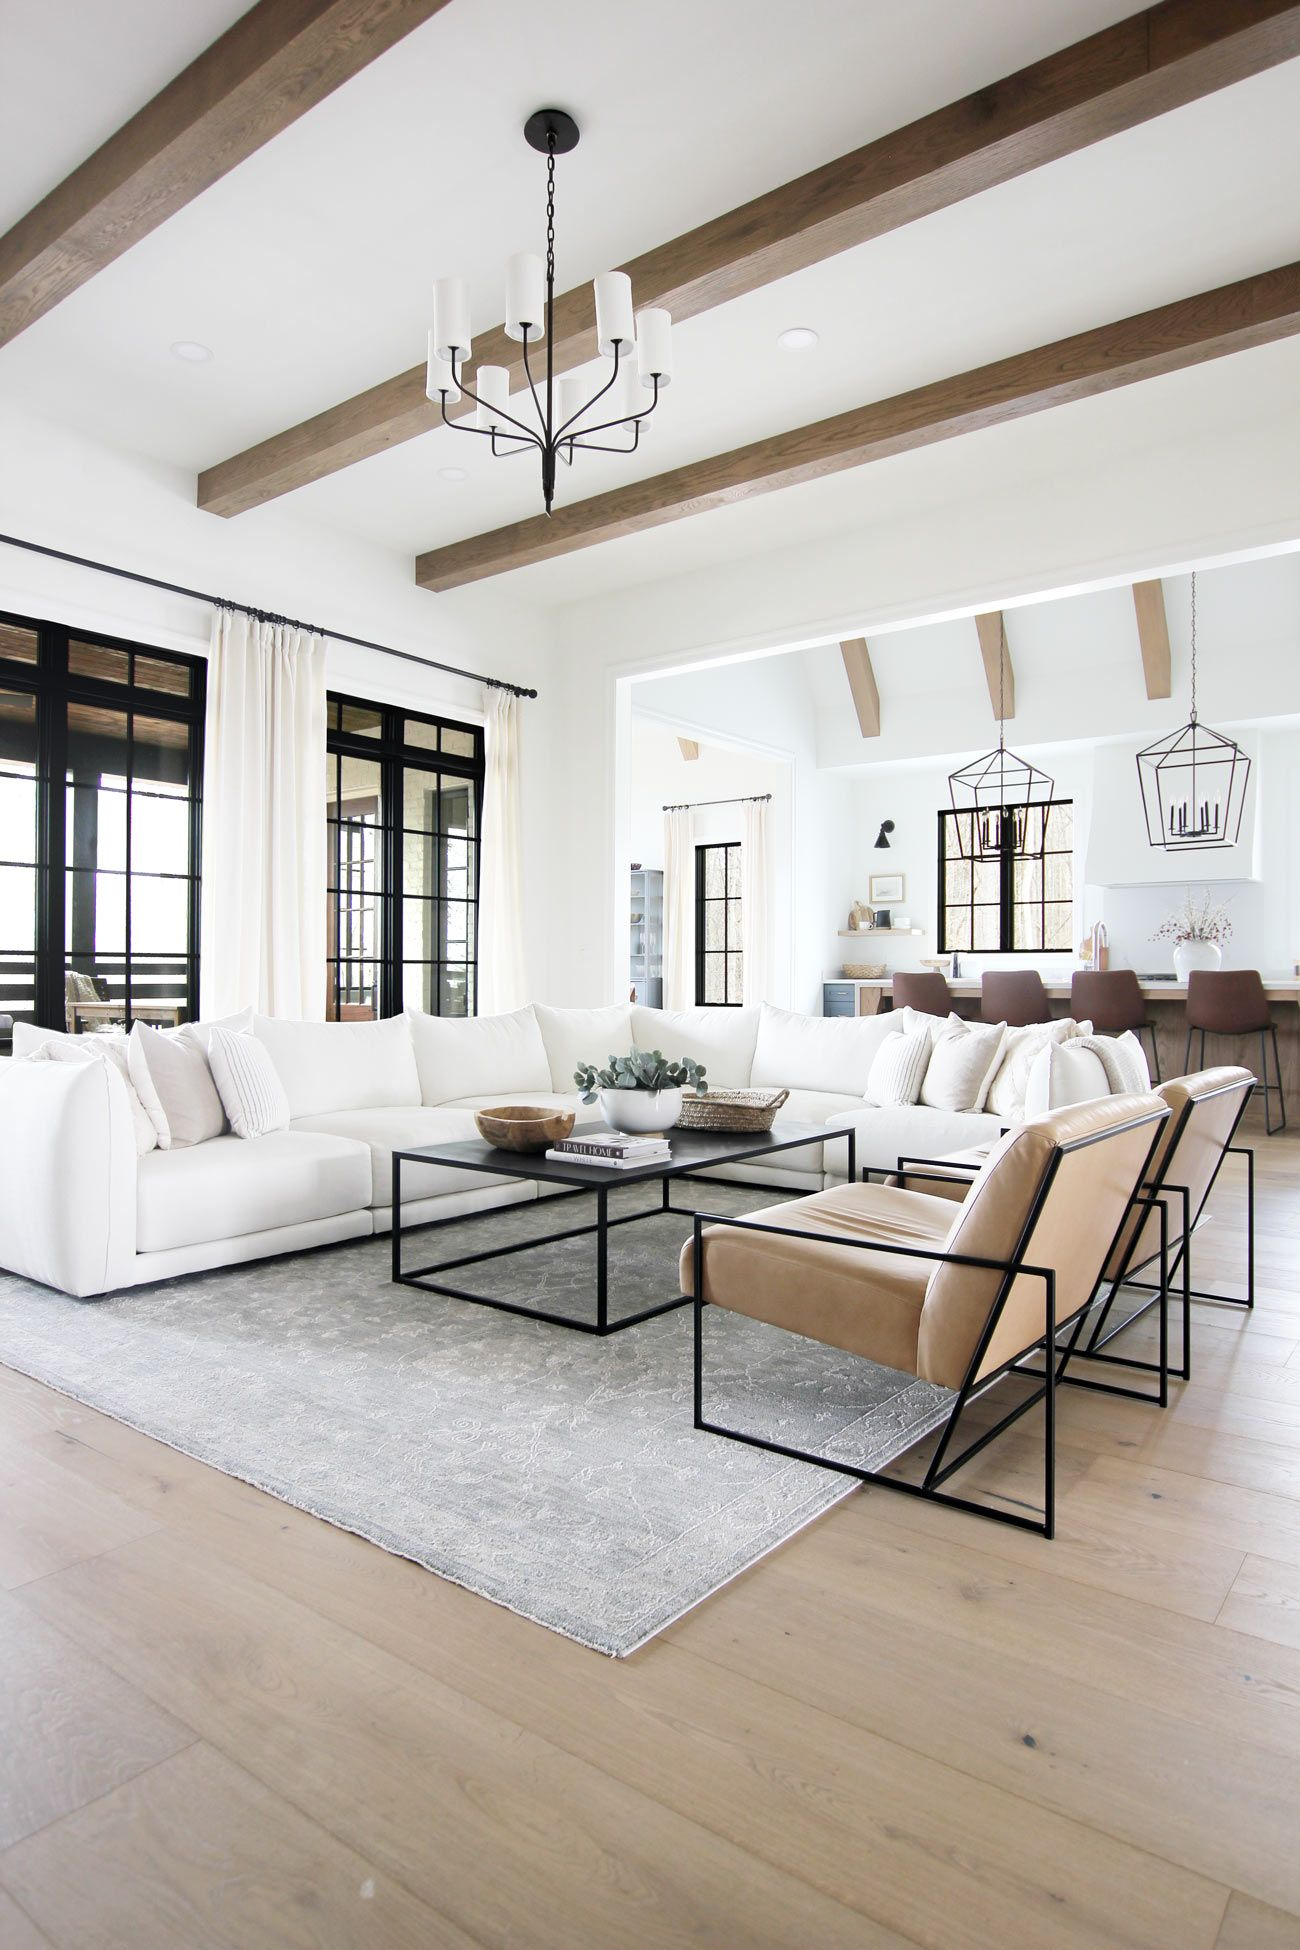 Photo of How to Add Warmth to an All White Room